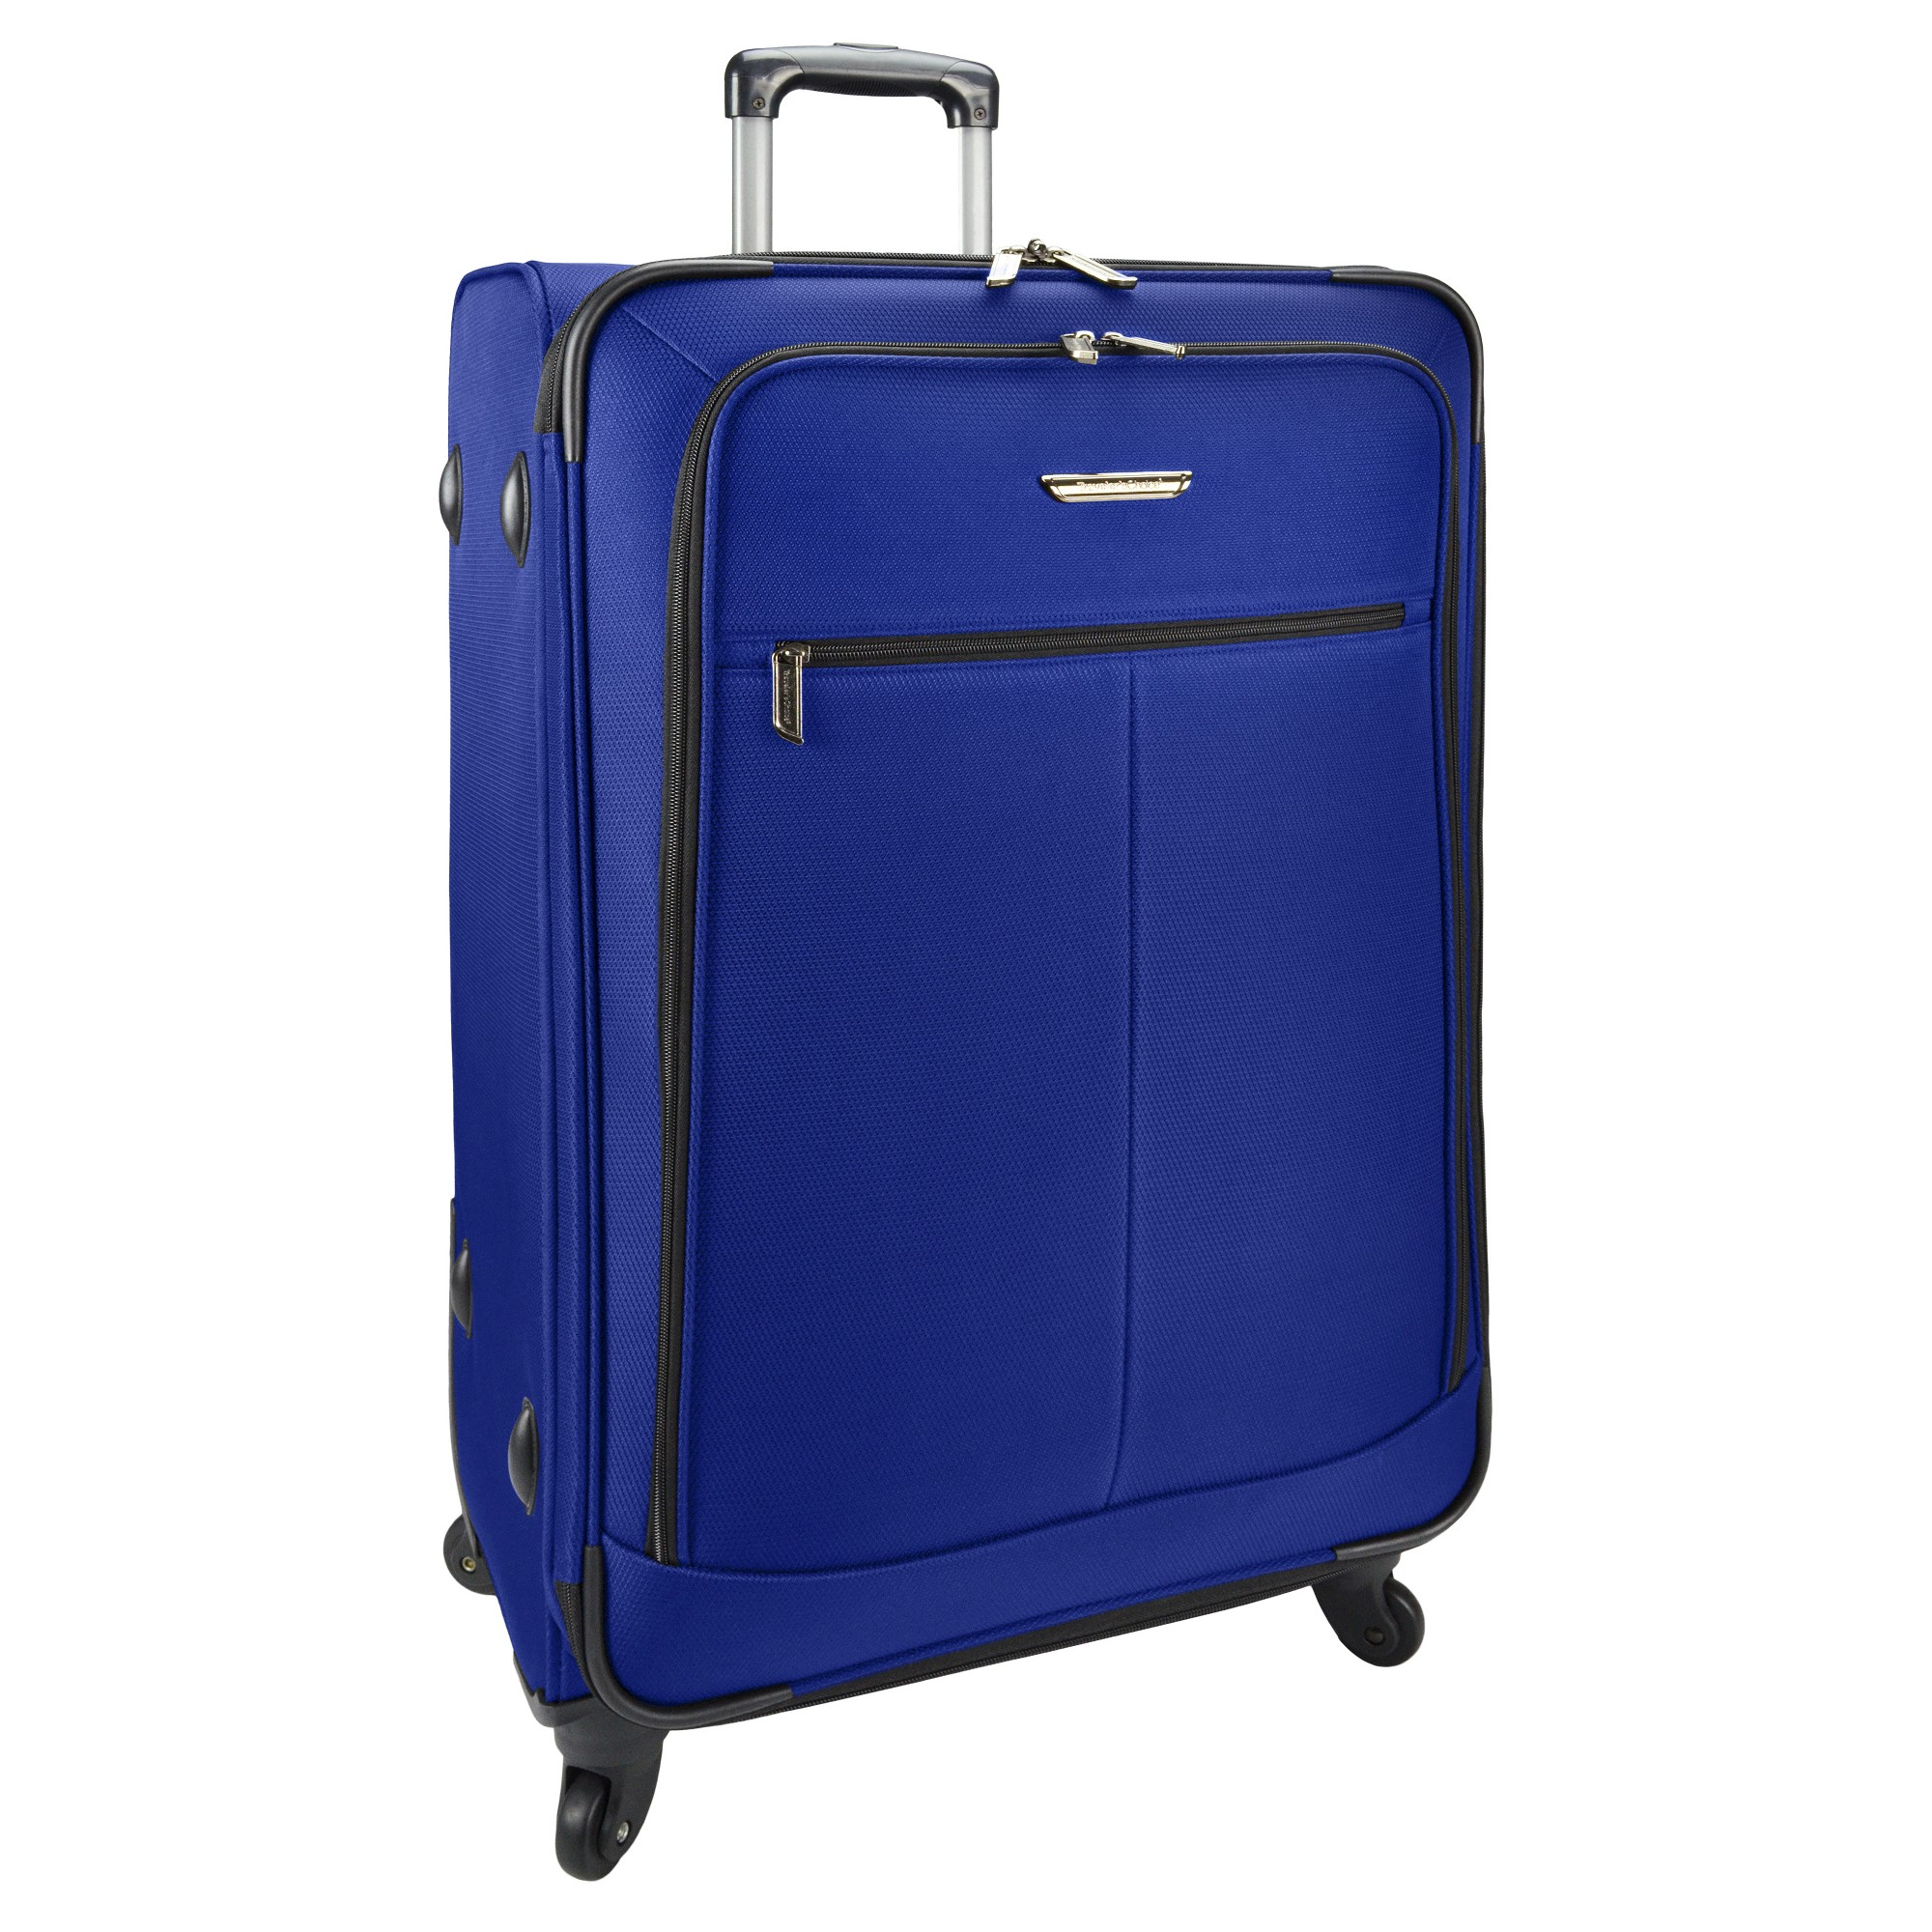 Traveler s Choice Carry On Suitcase - Cobalt Blue (22)  30e7adf0be9c1